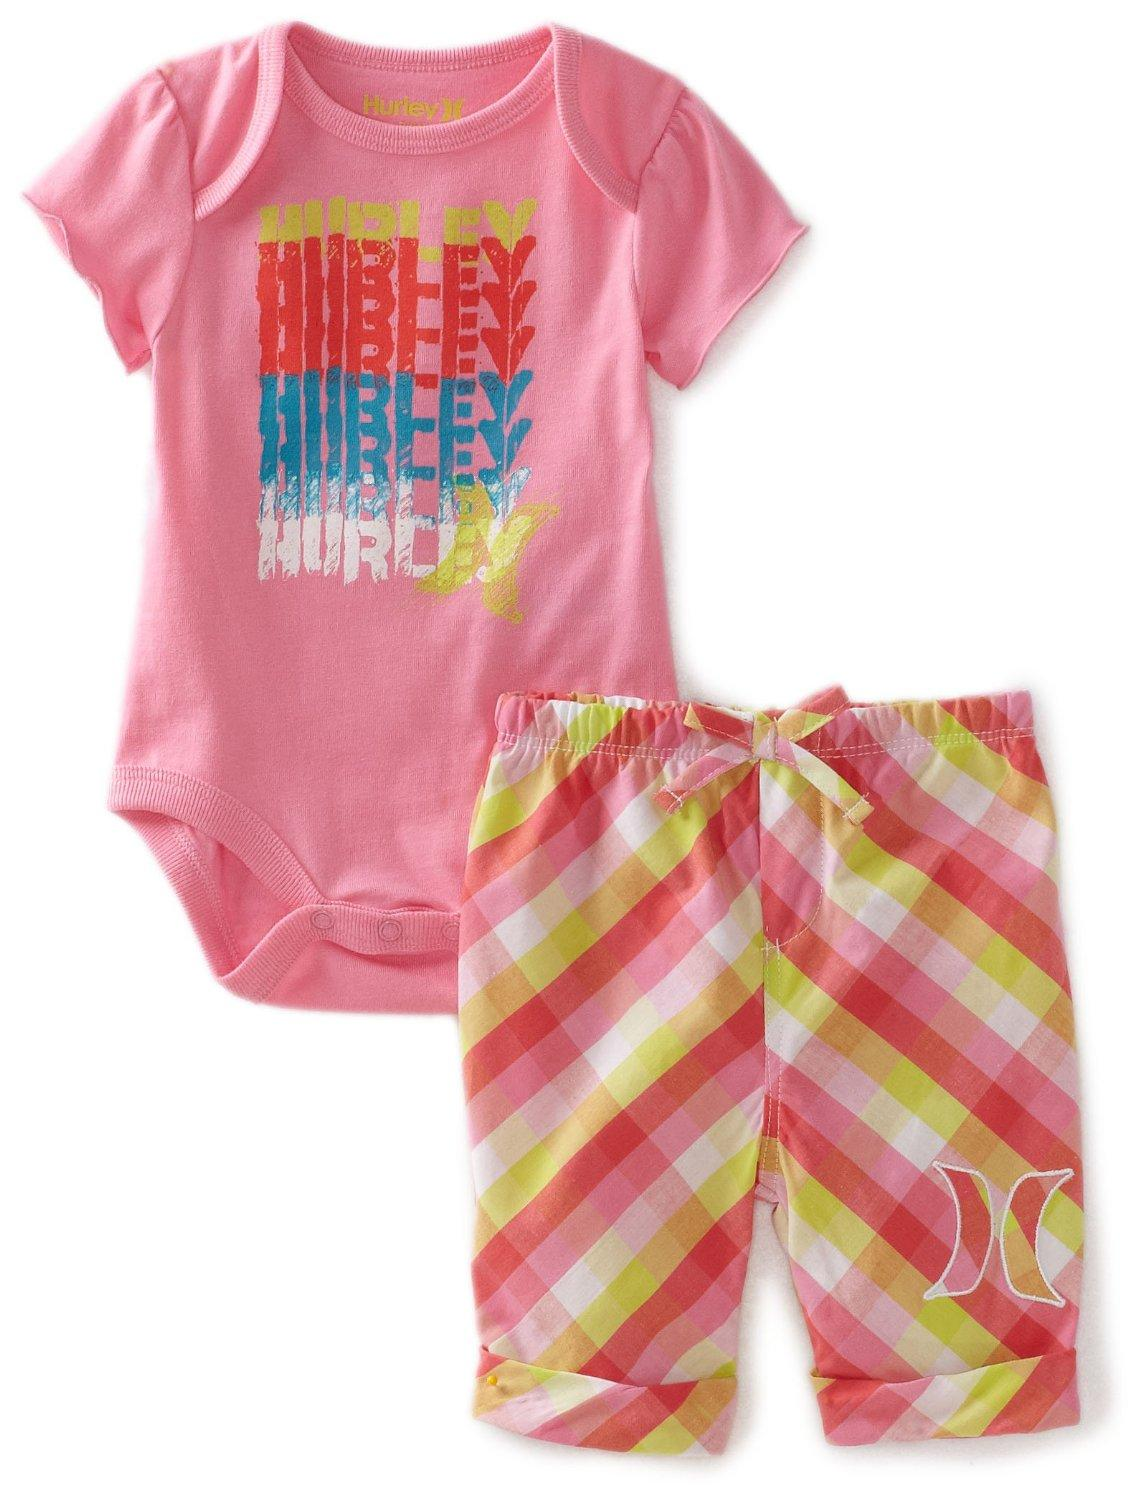 Discounted Hurley Baby Girls Infant Creeper Bermuda Set